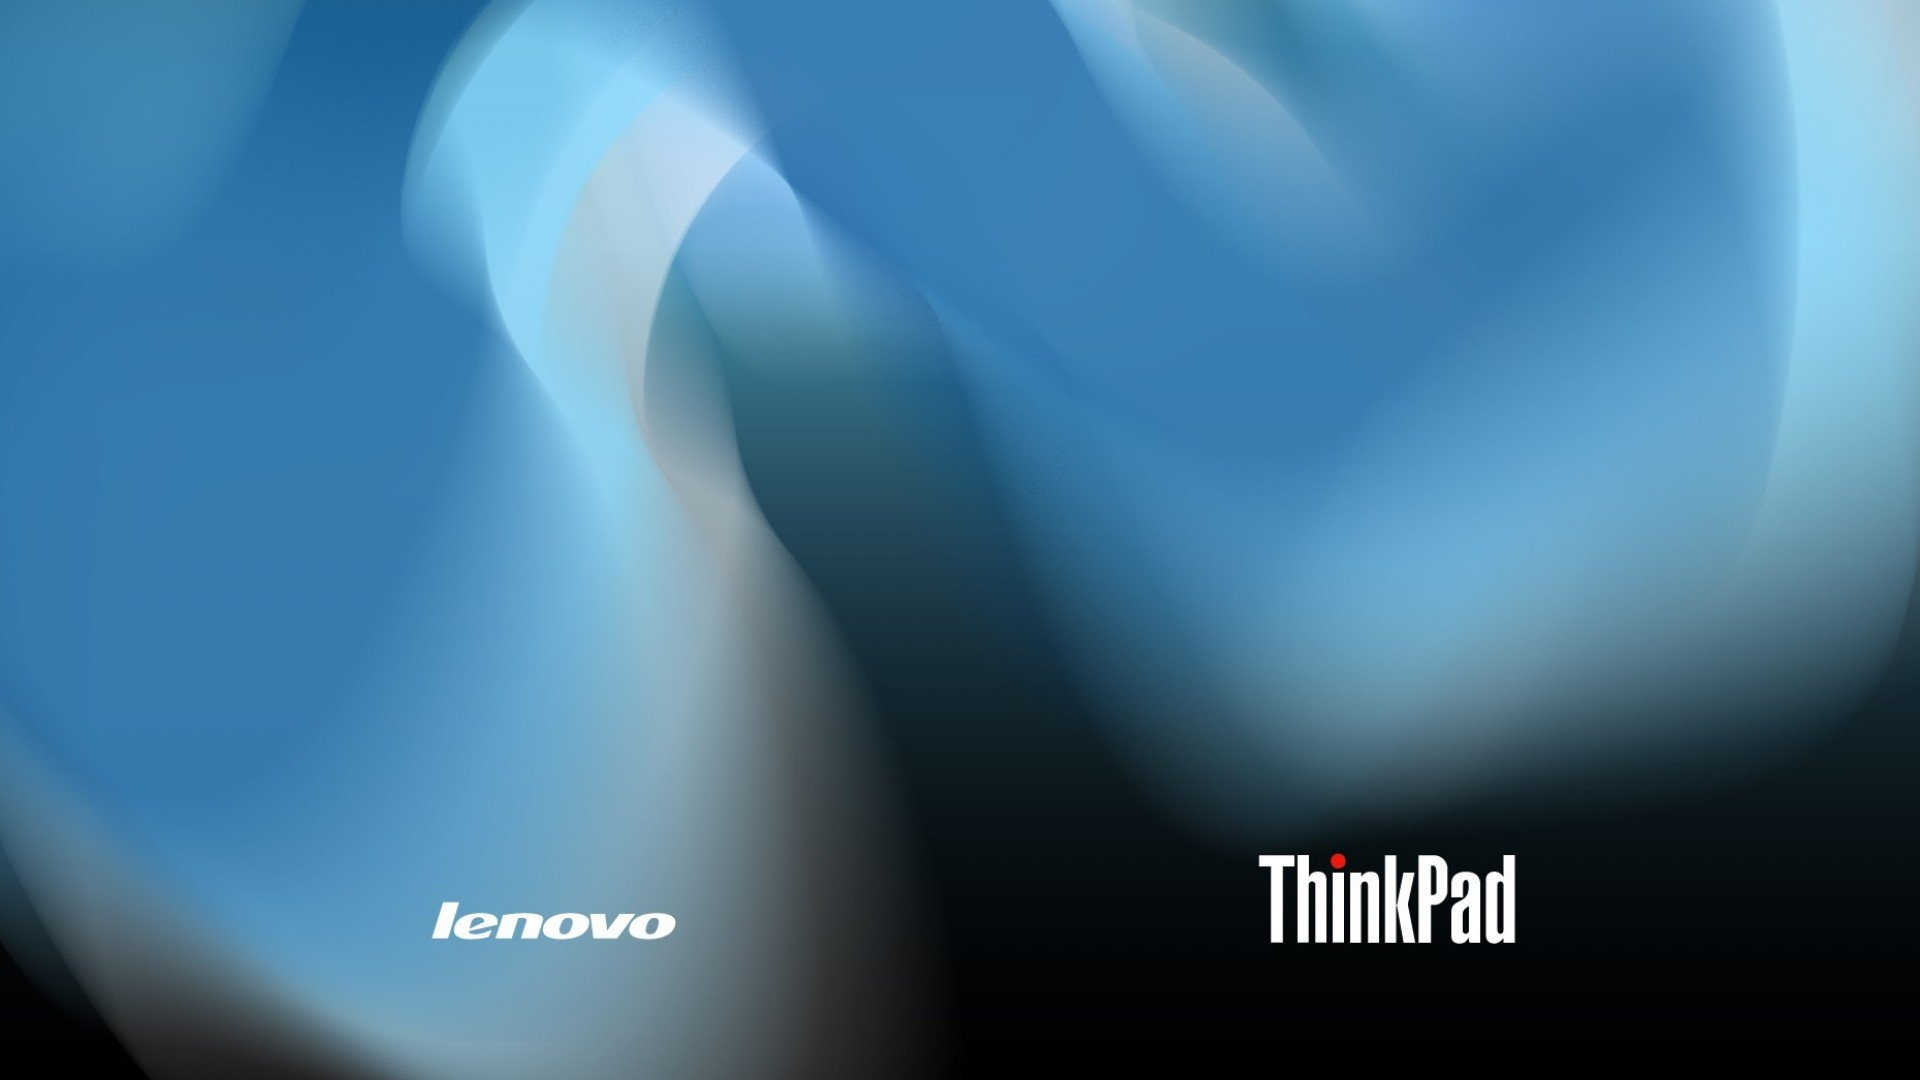 27 Handpicked Lenovo Wallpapers/Backgrounds In HD For Free ...